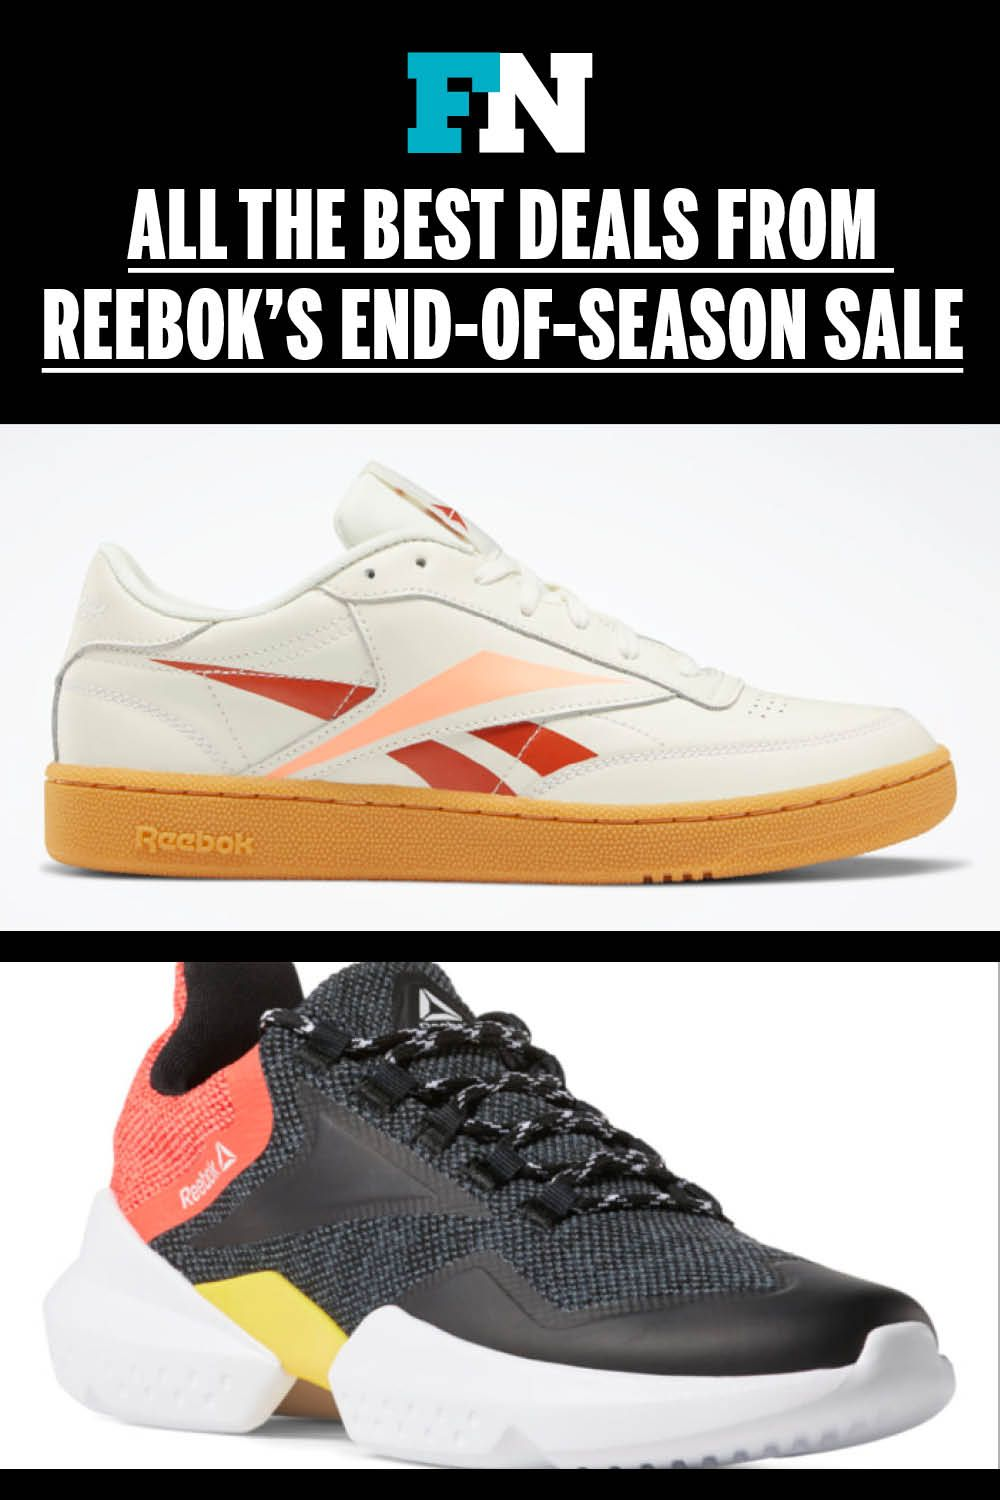 All The Best Deals From Reebok S End Of Season Sale Athleisure Brands Reebok Sneakers